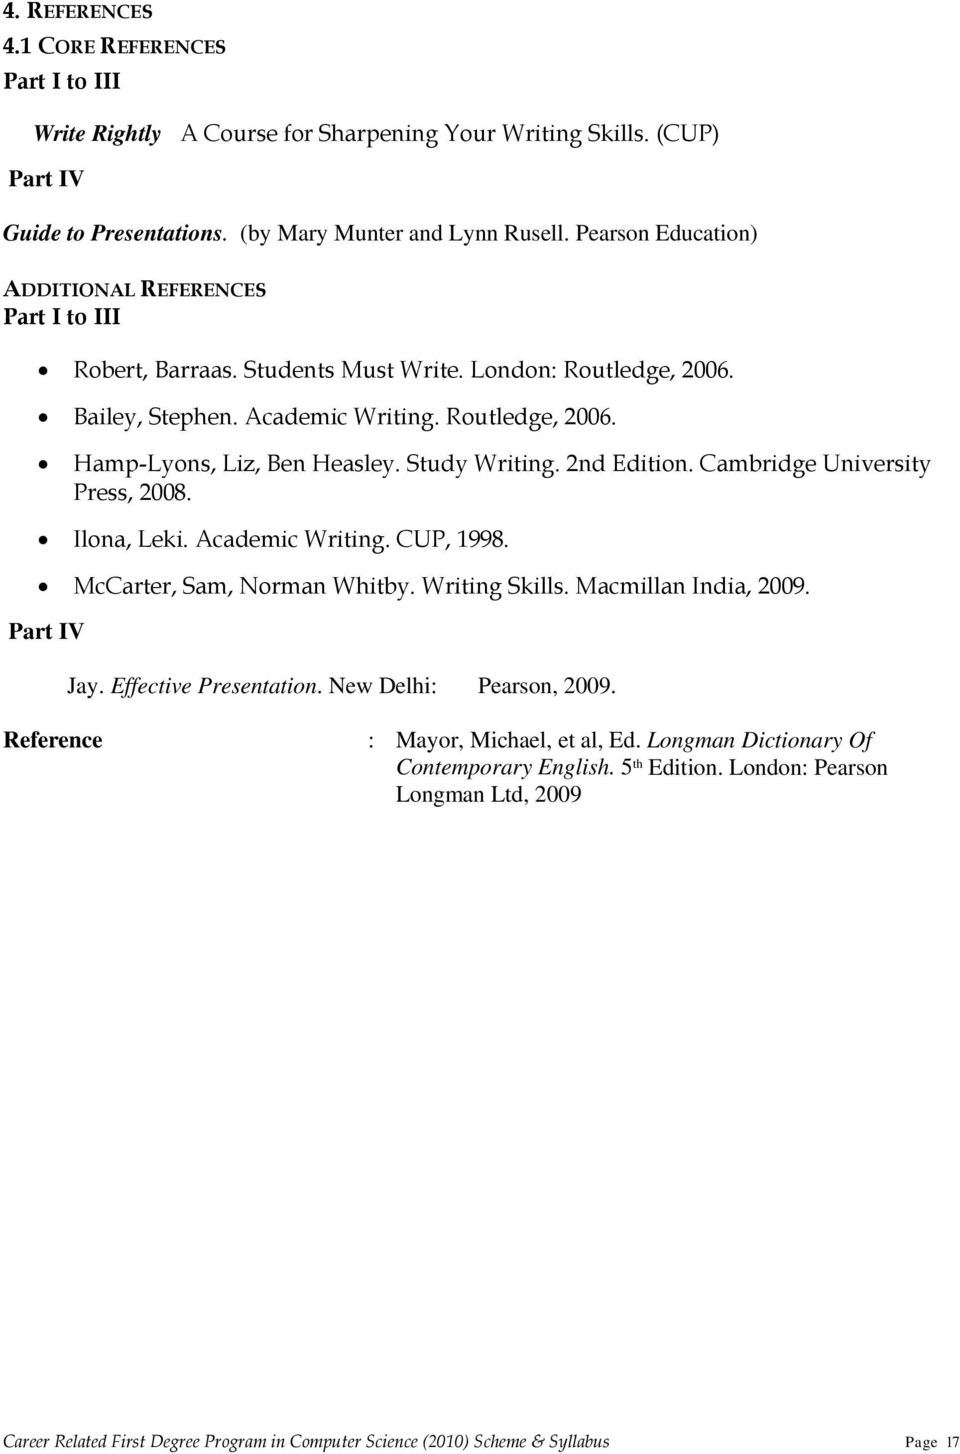 Career related first degree programme in computer science scheme study writing 2nd edition cambridge university press 2008 ilona leki fandeluxe Image collections